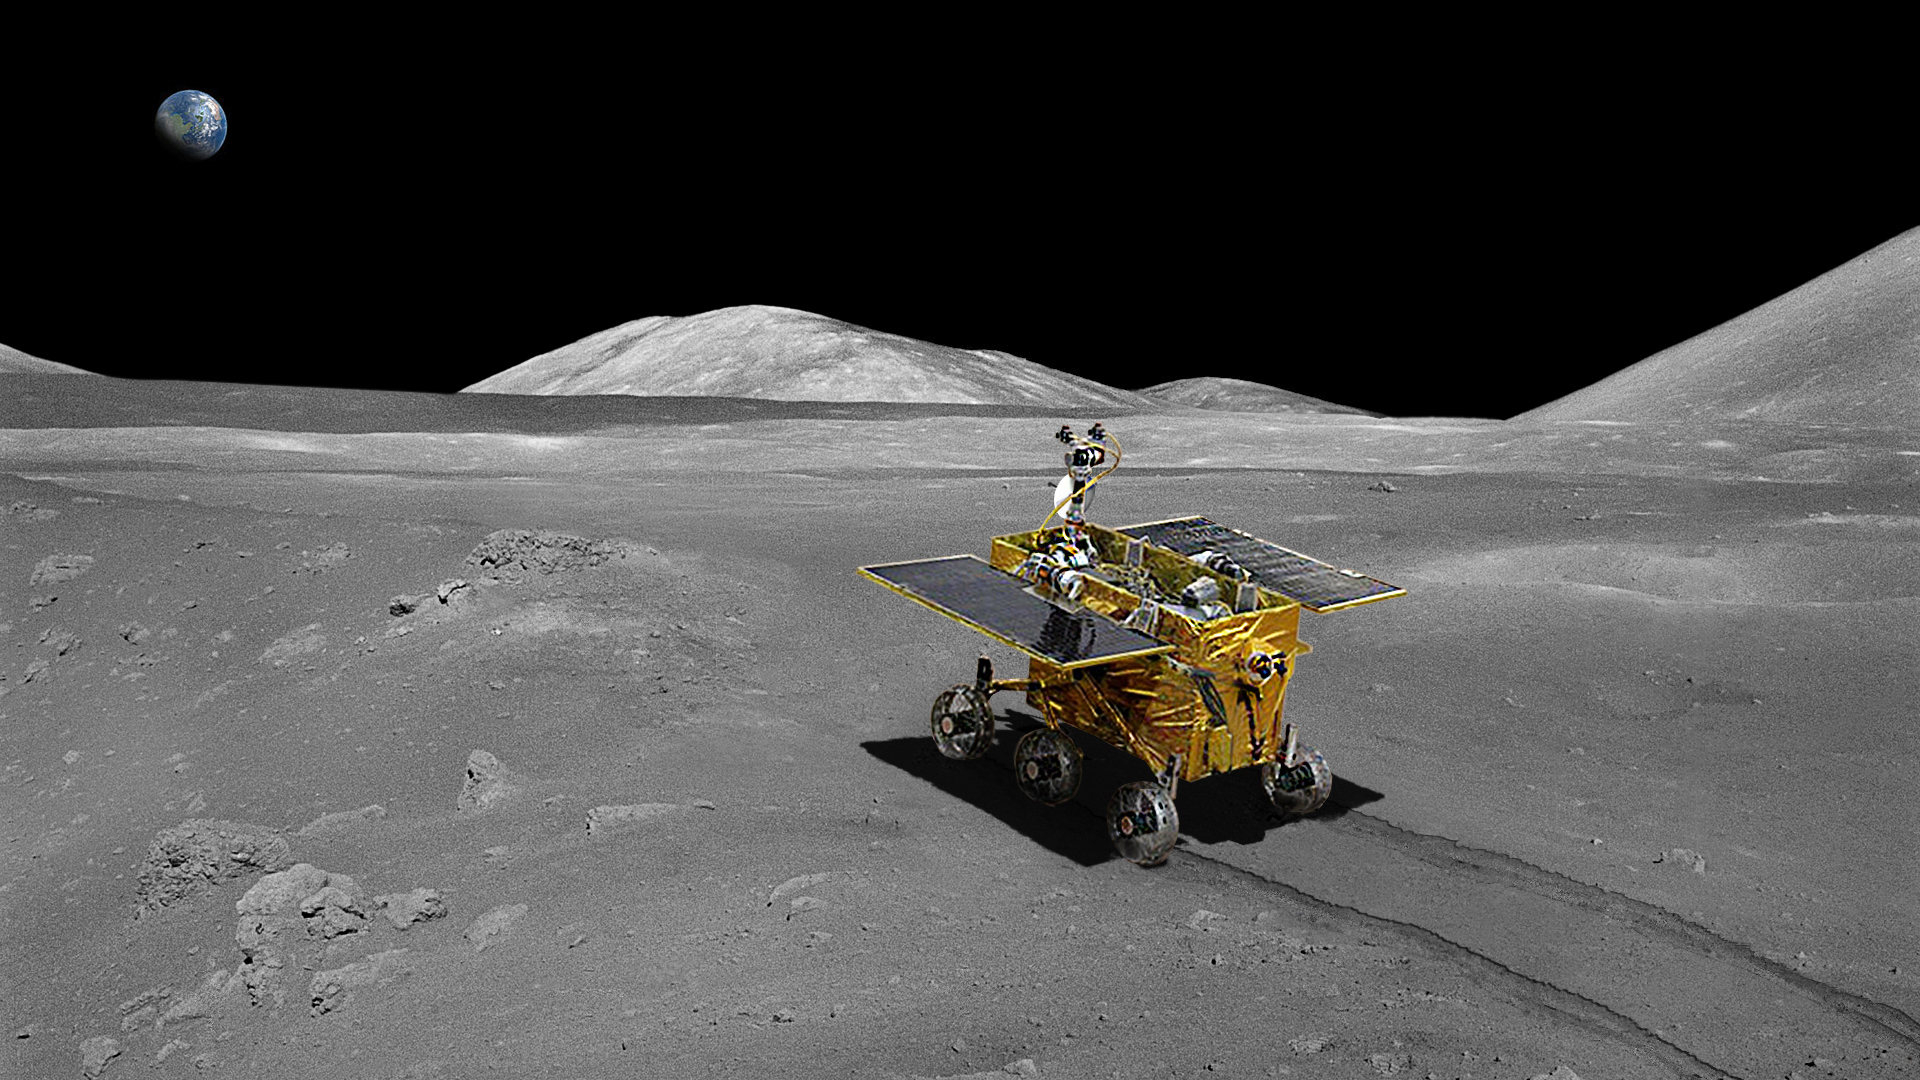 An artist's illustration of China's Yutu (Jade Rabbit) moon rover on the lunar surface. The rover and a lander are part of China's Chang'e 3 mission to the moon's Bay of Rainbows.